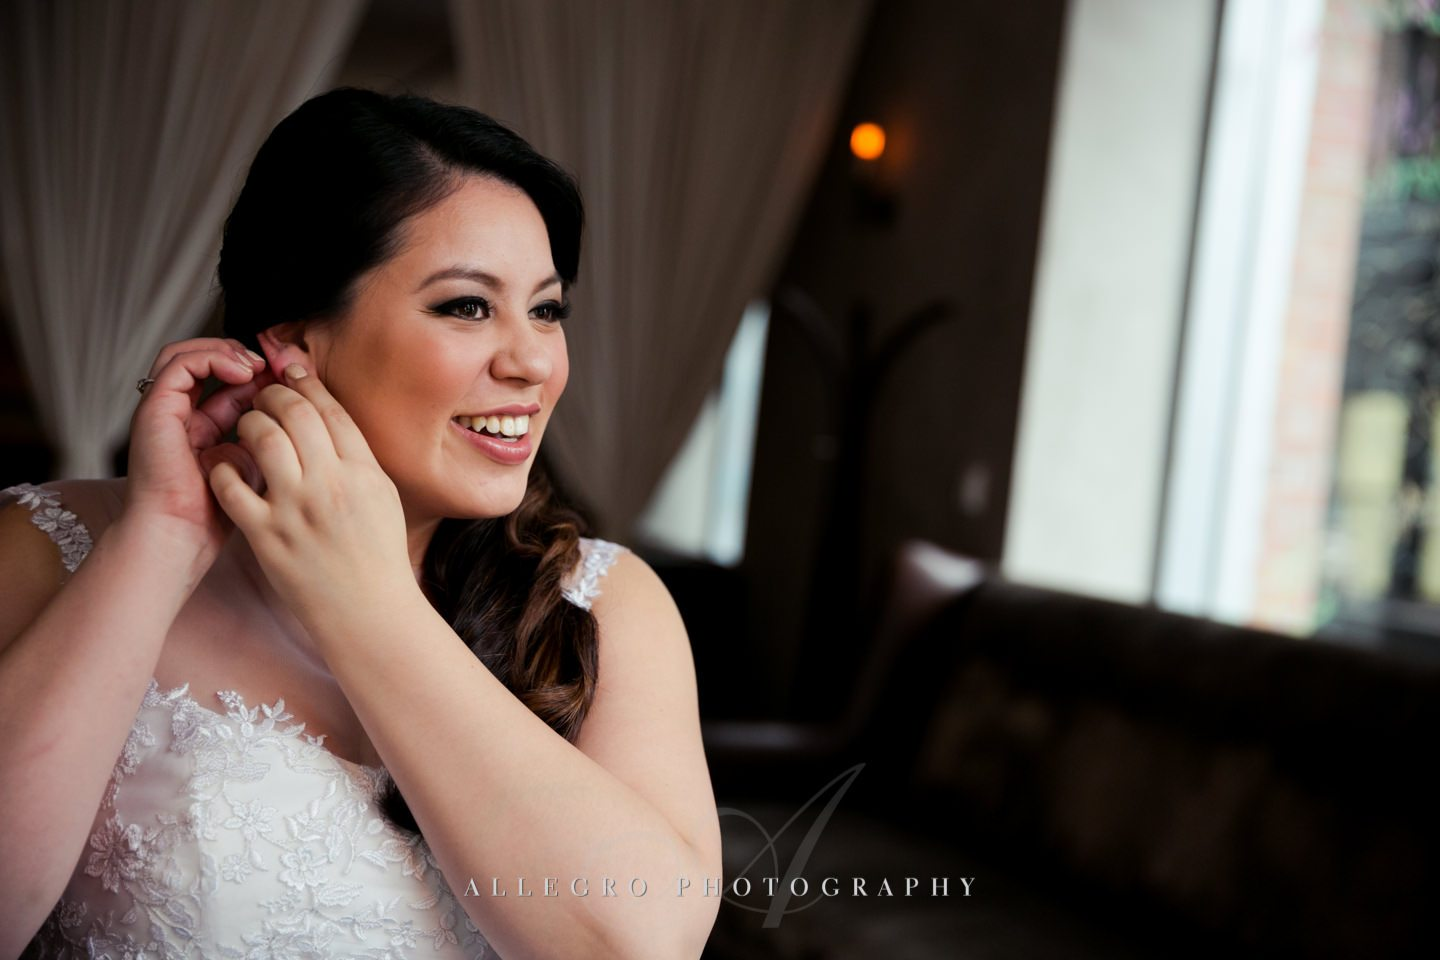 bride puts on wedding jewelry earrings  -photo by allegro photography